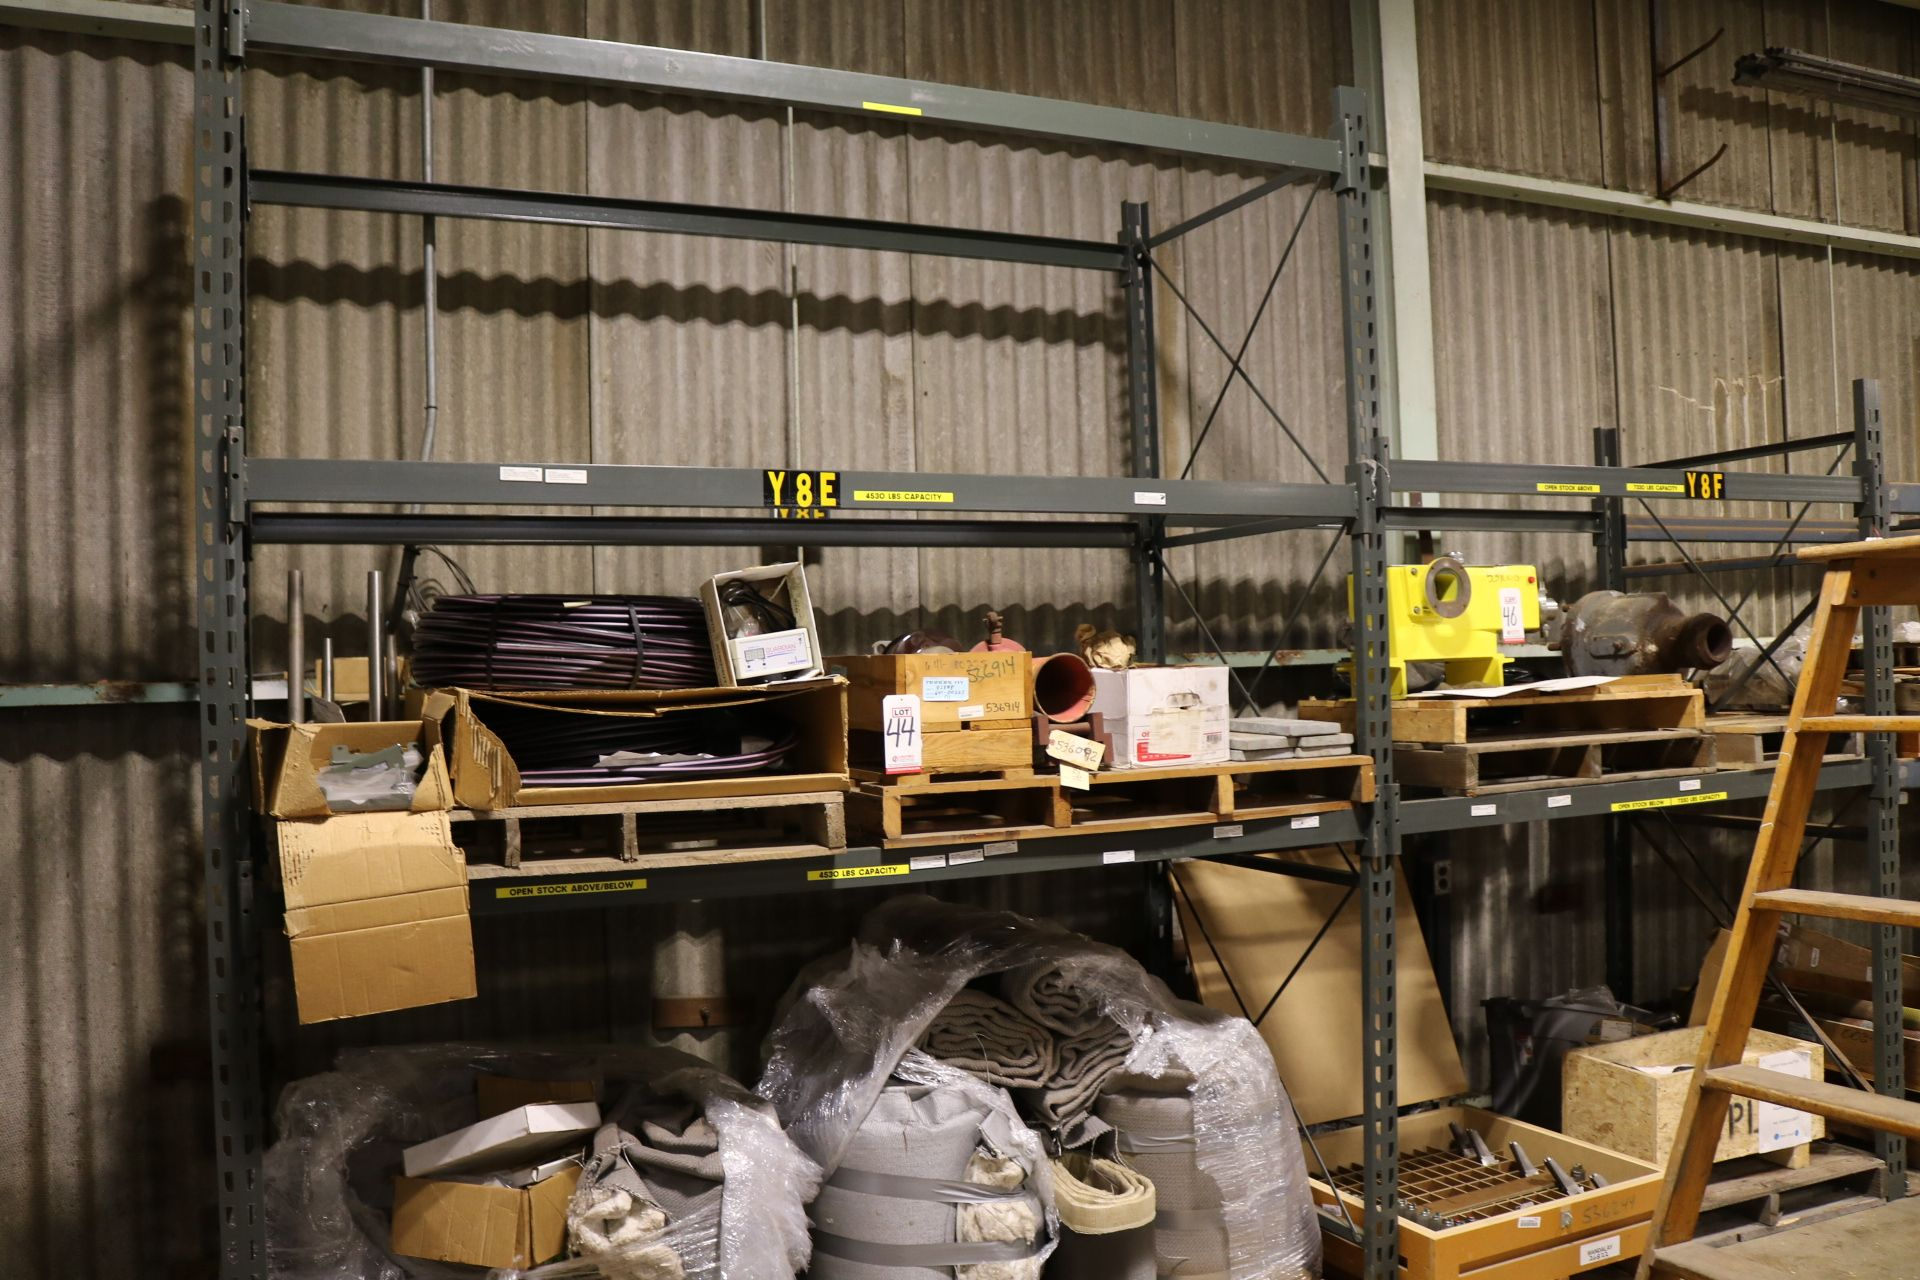 Lot 48 - LOT - (2) SECTIONS PALLET RACK, 8' AND 6' BEAMS, (2) 10' AND (1) 8' UPRIGHTS, CONTENTS NOT INCLUDED